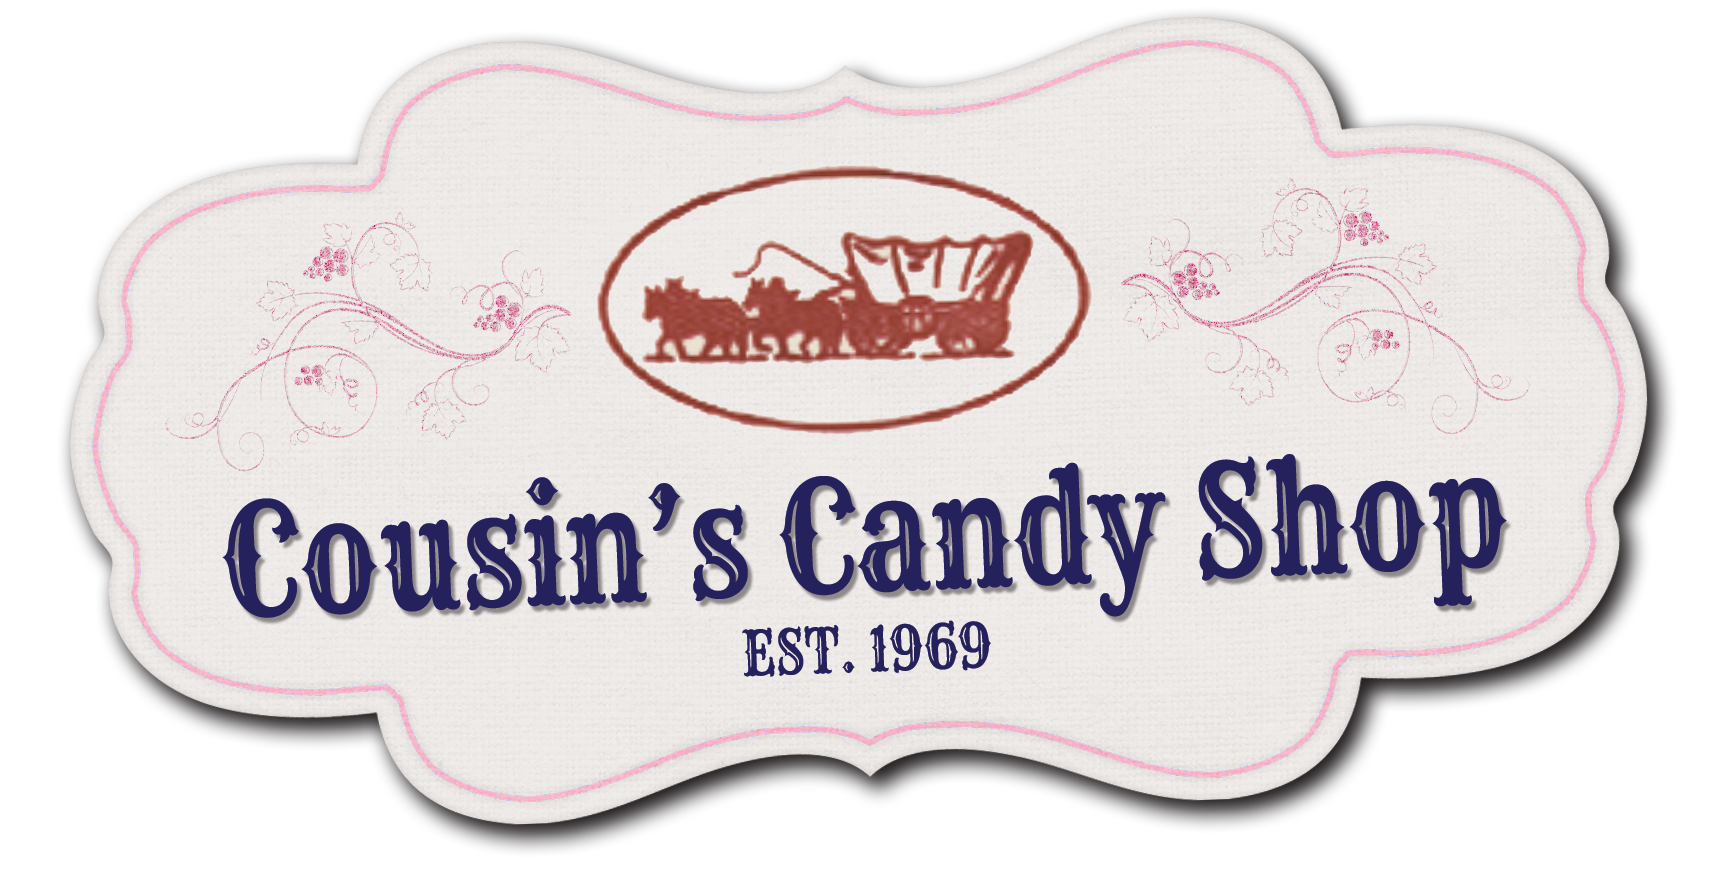 Cousin's Candy Shop | Virginia City, Montana